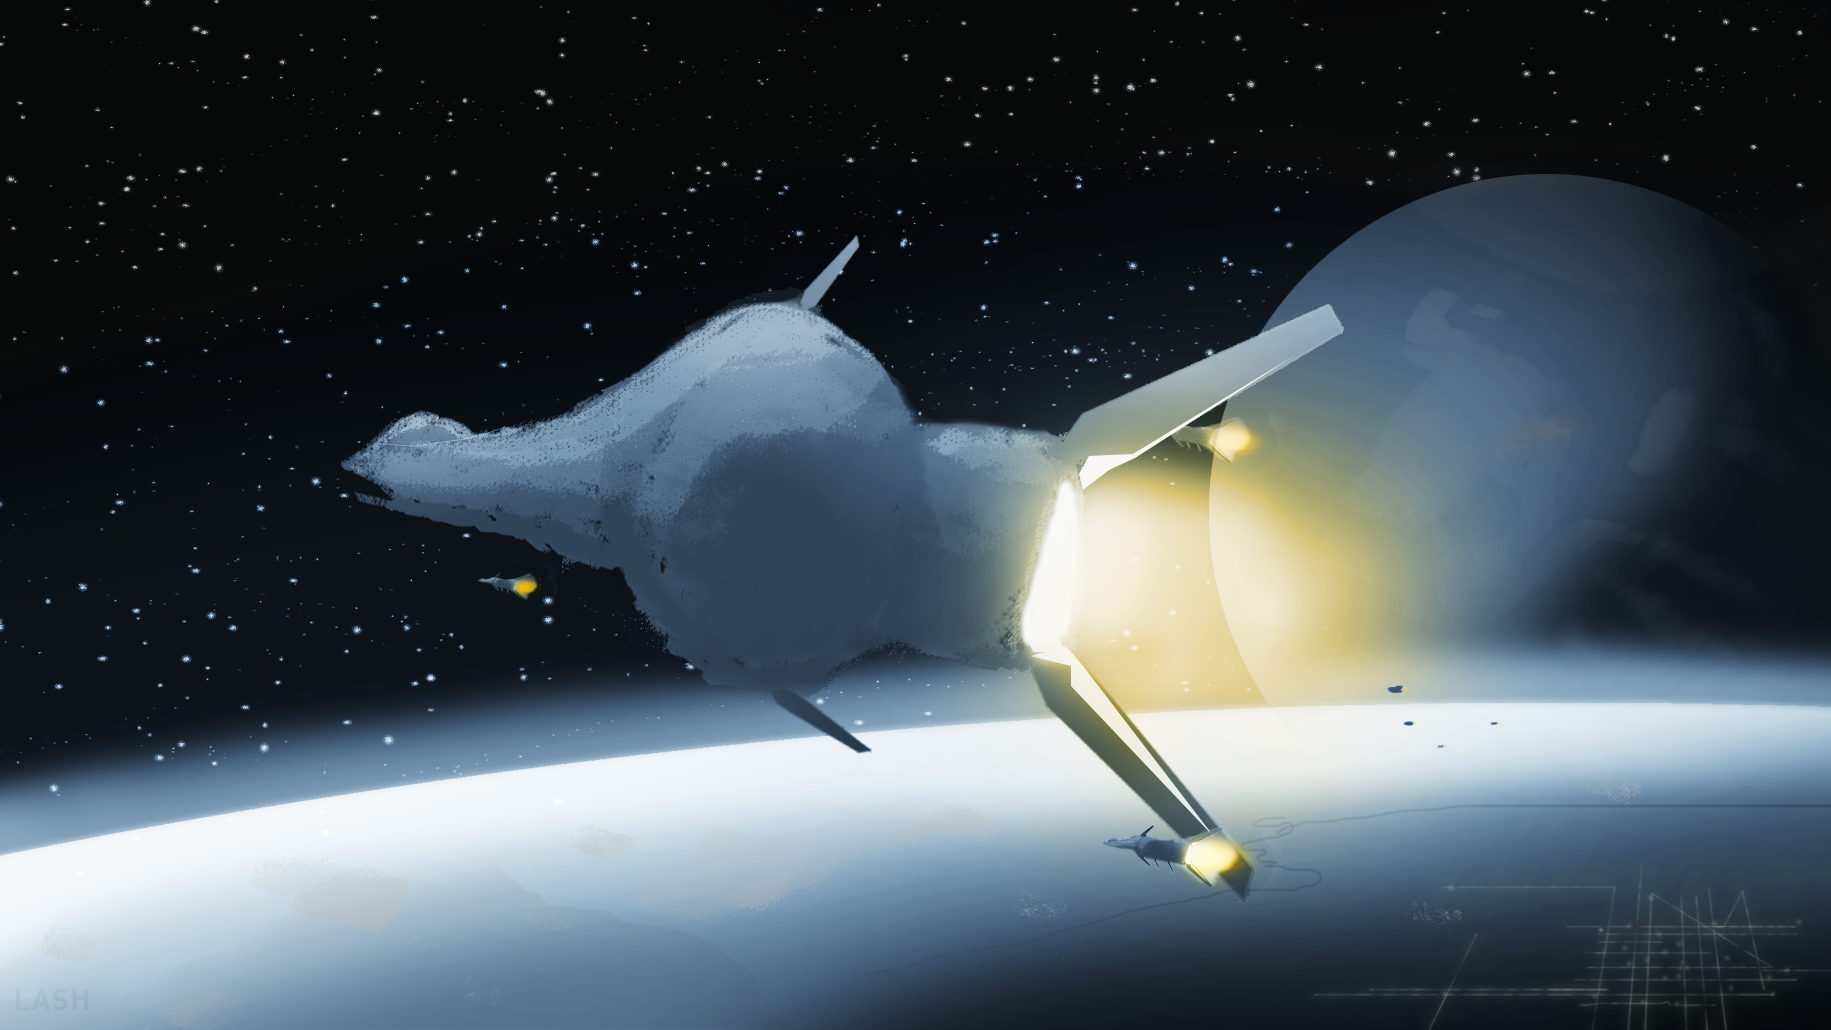 The CDF liquid gas transport ship Erasmus moves to attain skip distance under escort, moving vital supplies to Pheonix station to support to the defense against the Consu.